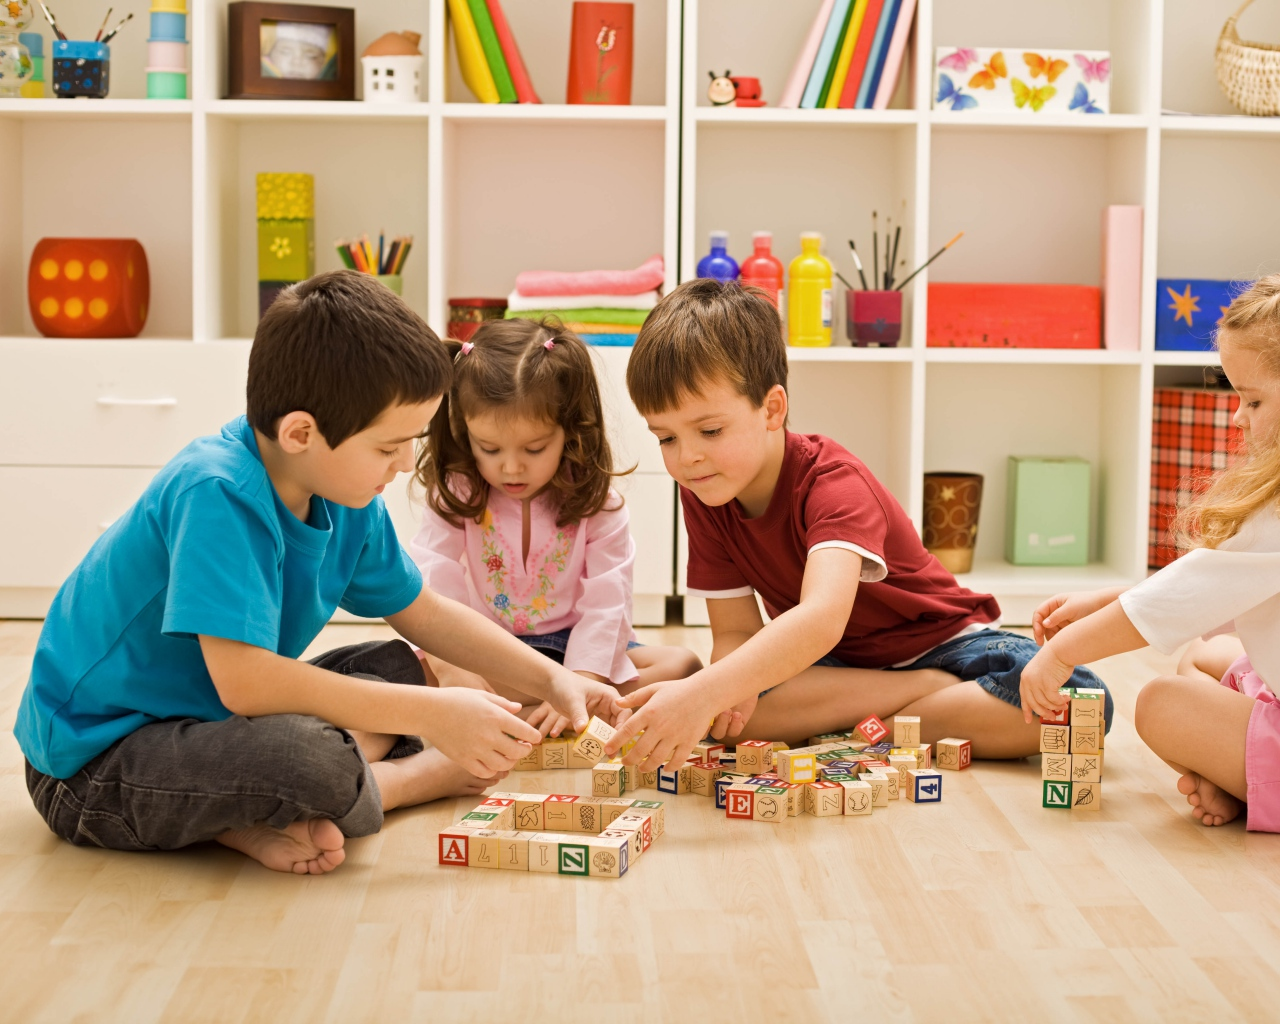 children_cubes_toys_80184_1280x1024